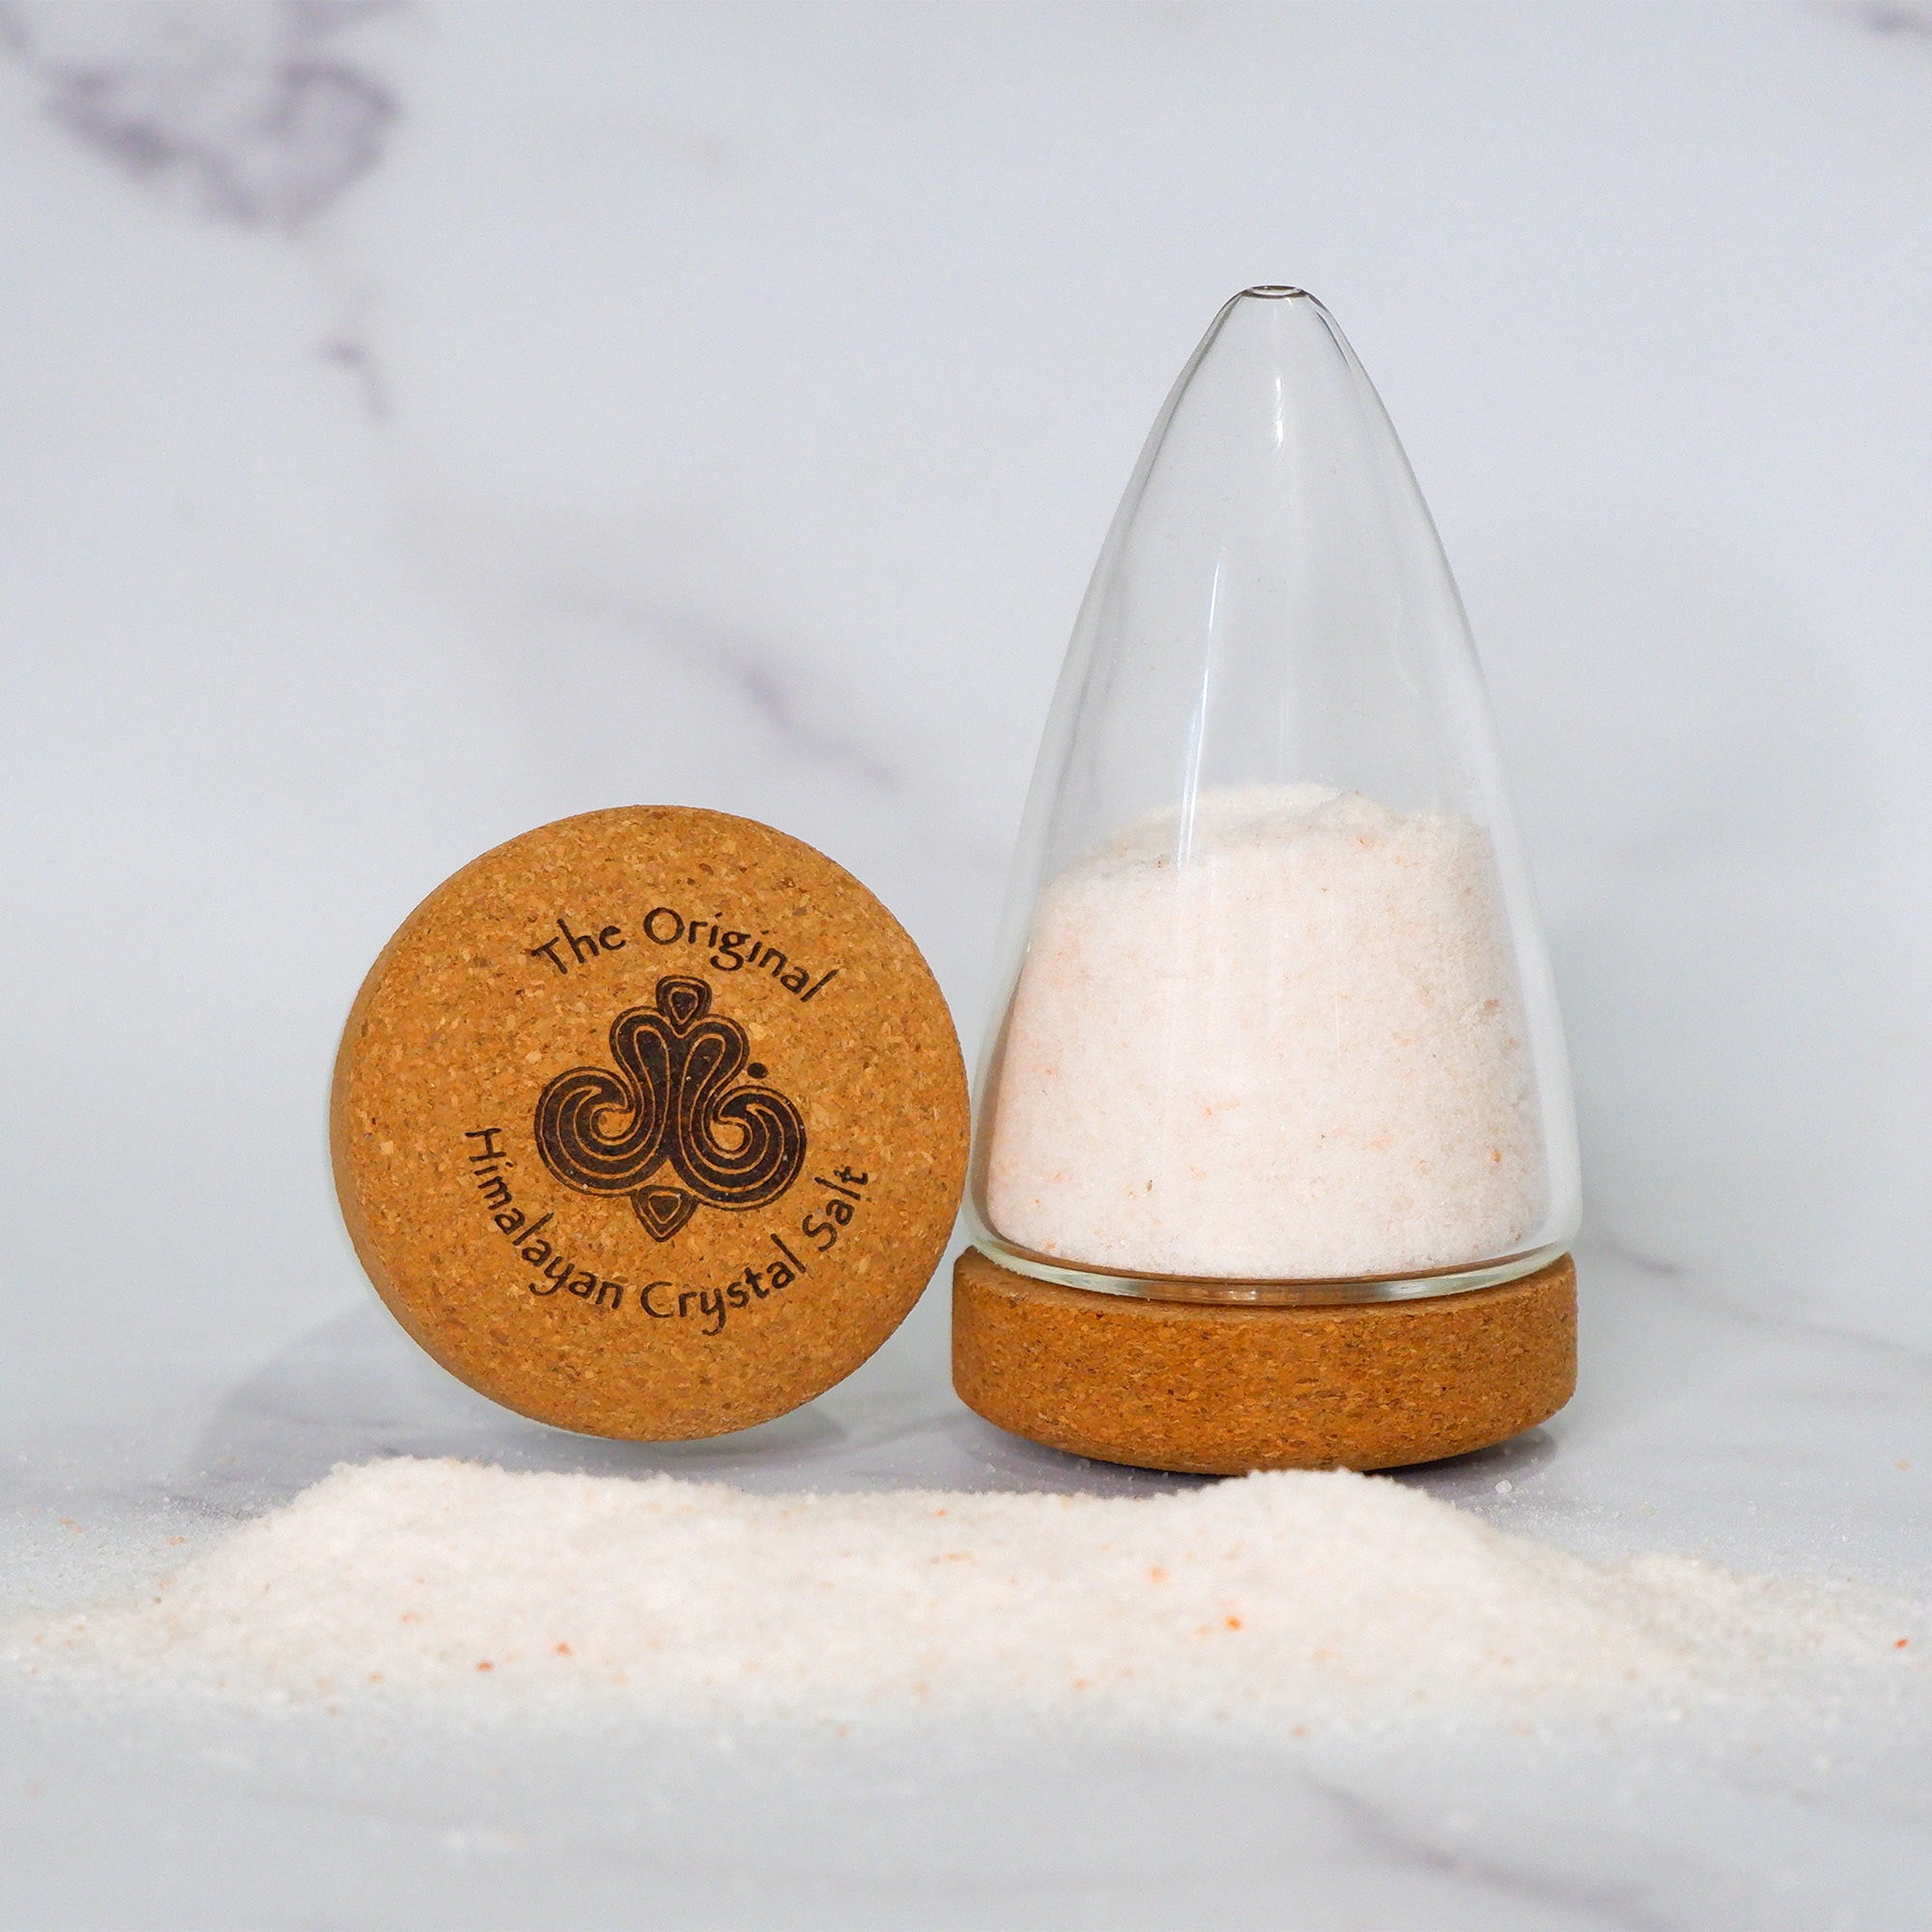 Glass salt shaker with cork lid Original Himalayan Crystal Salt